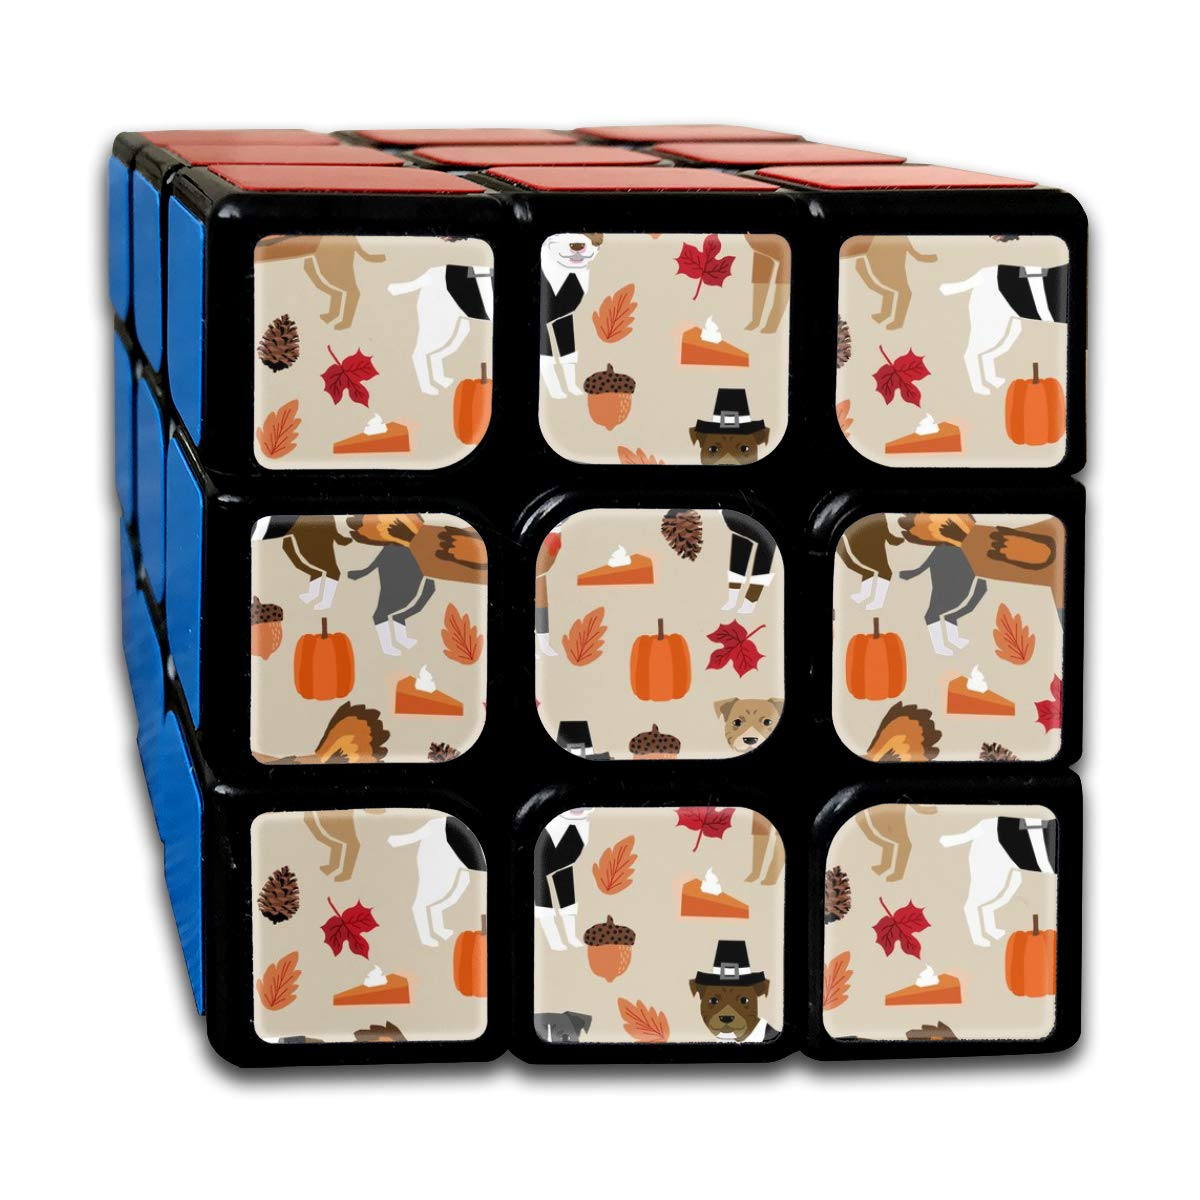 vintage cap Pitbull Thanksgiving - Cute Dog, Dogs, Turkey, Holiday, Fall Autumn, Dogs Customized Speed Cube 3x3 Smooth Magic Cube Puzzle Game Brain Training Game for Adults Kids